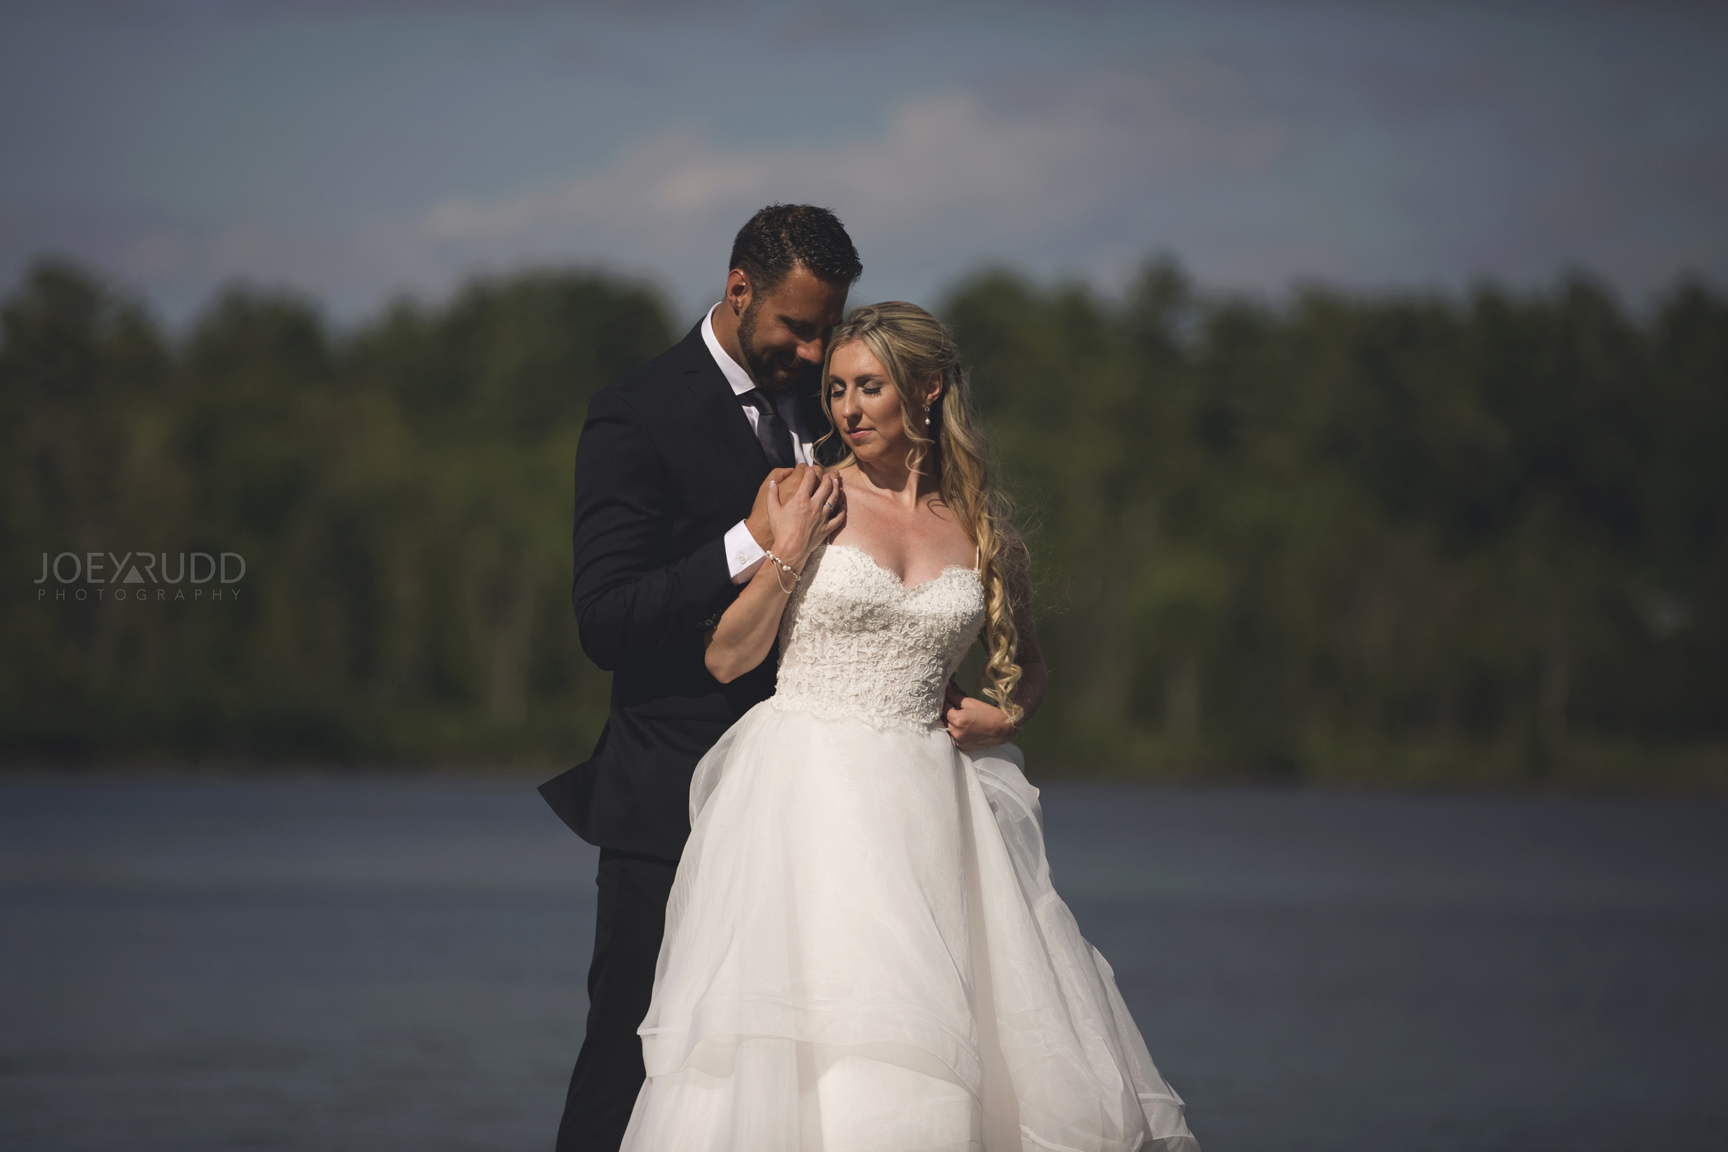 Calabogie Wedding at Barnet Park by Ottawa Wedding Photographer Joey Rudd Photography Lakeside Dock Couple